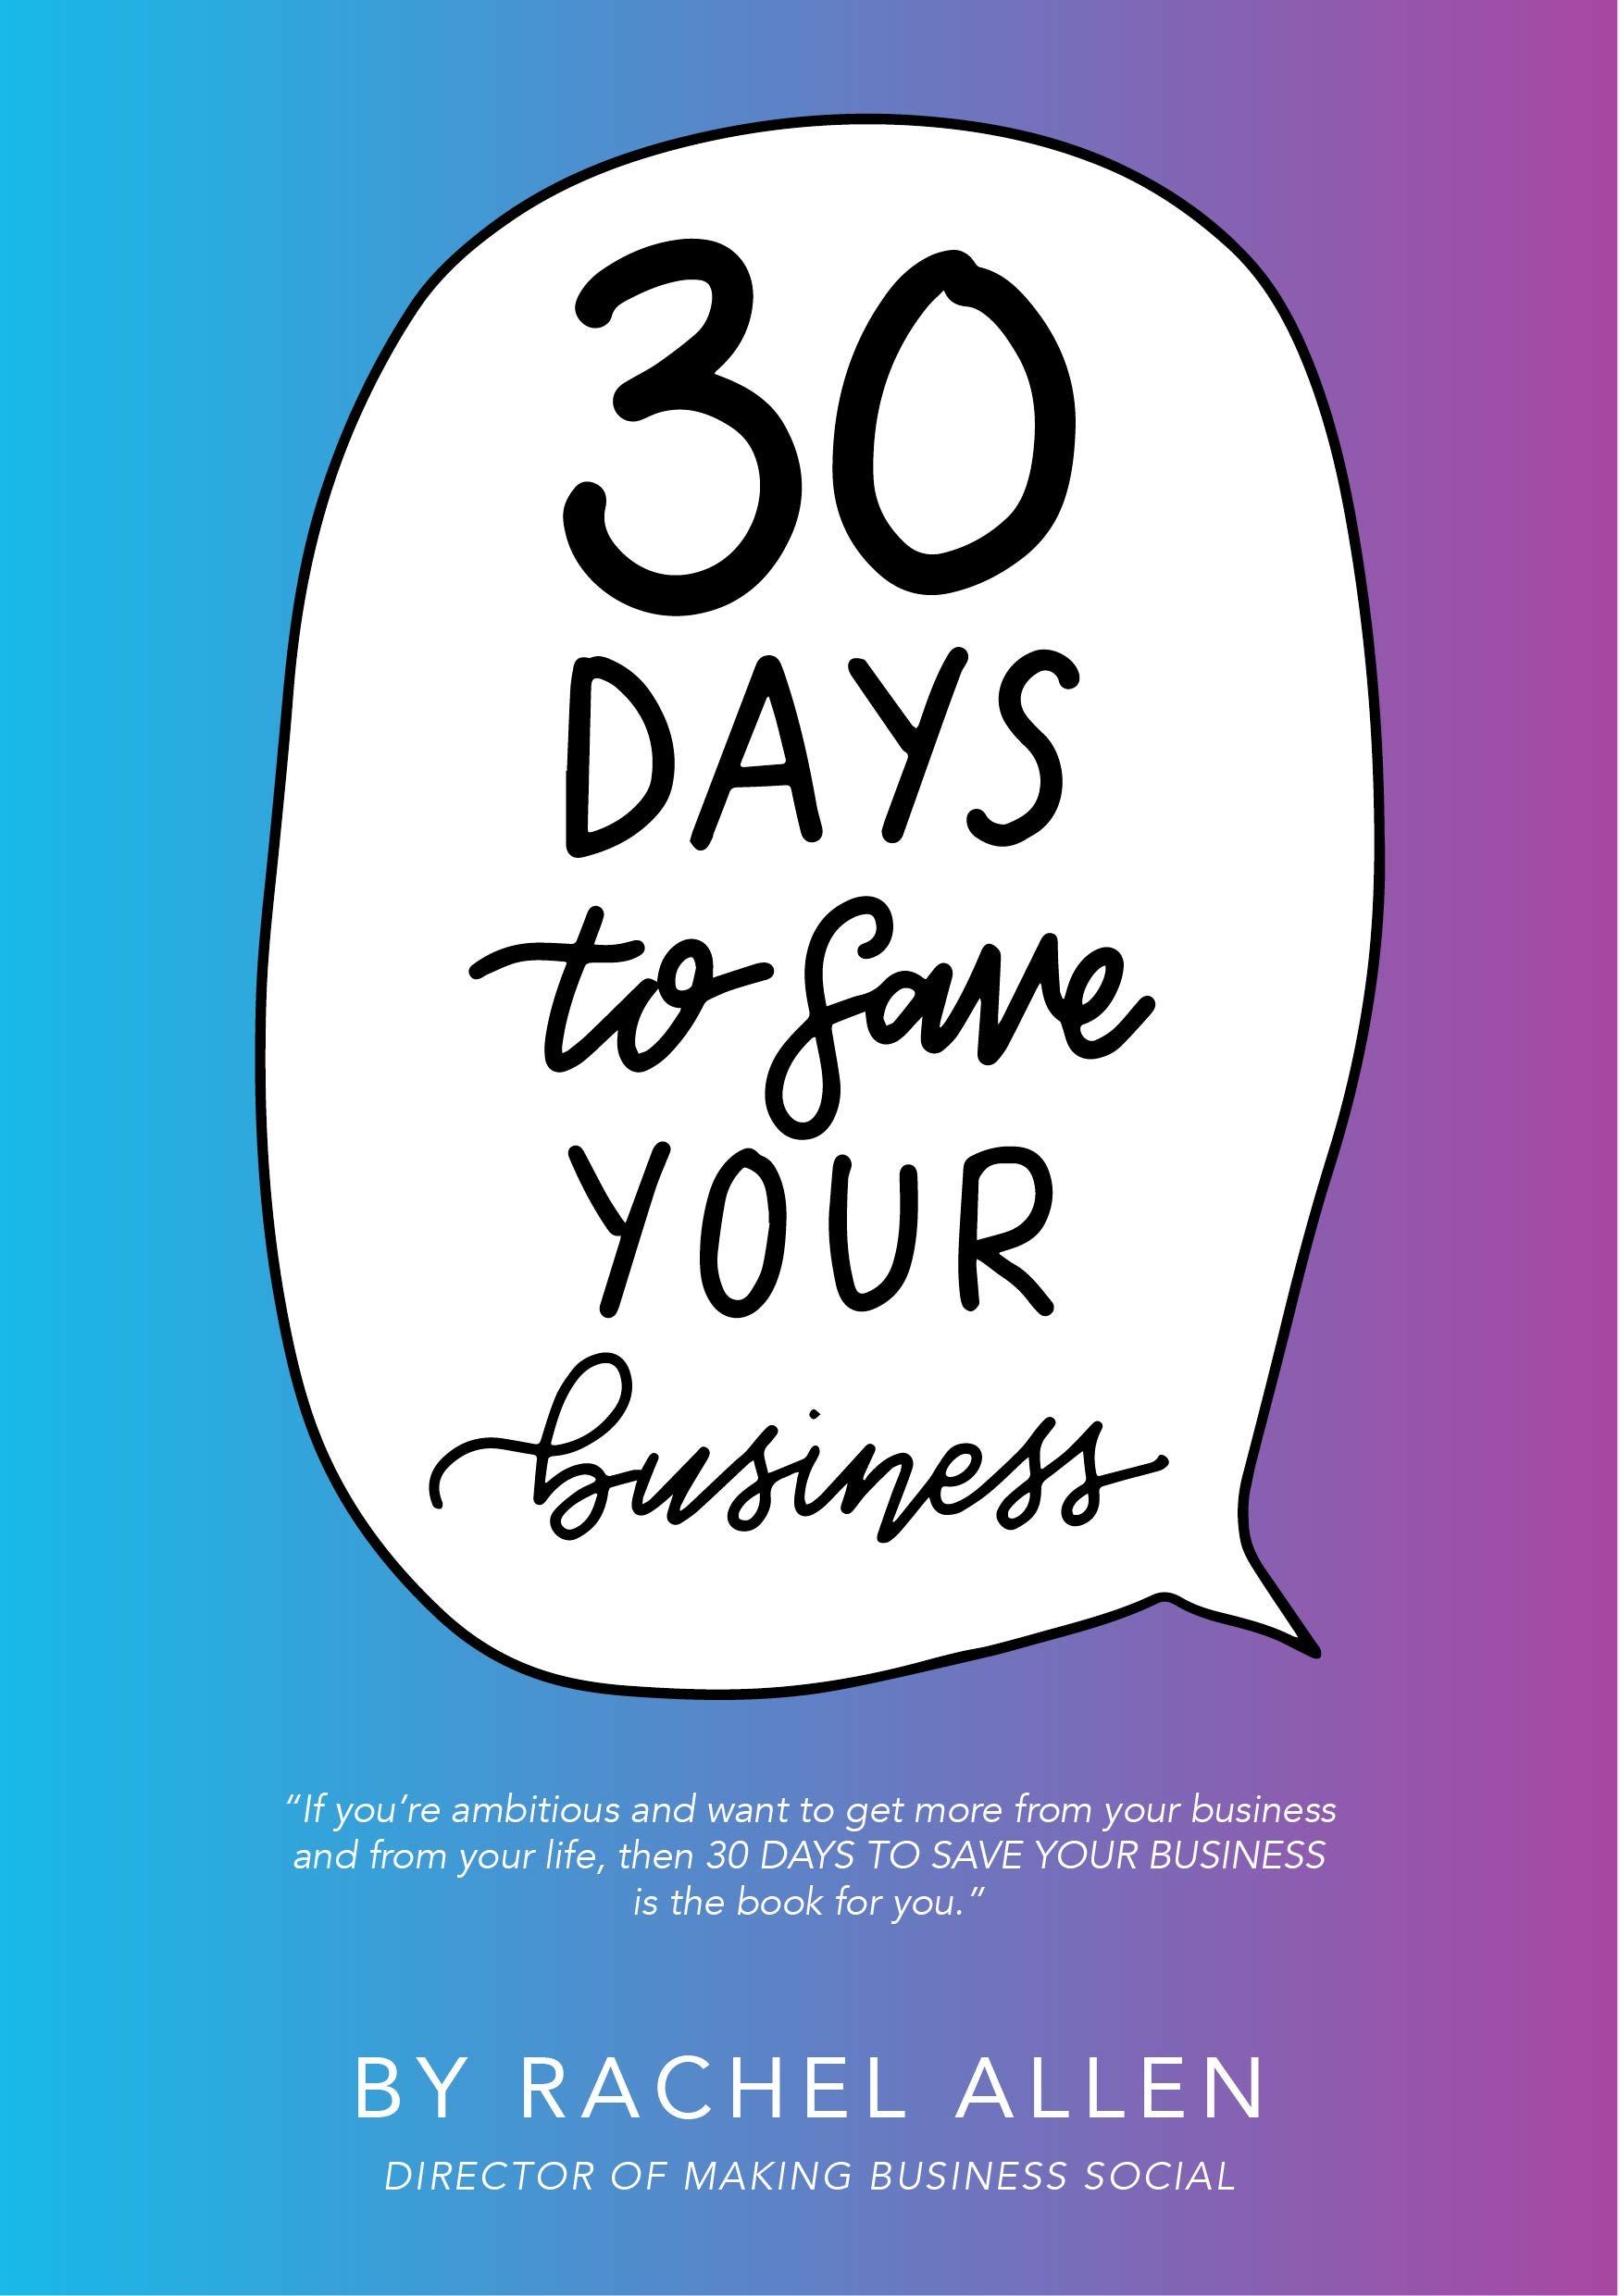 30 Days to Save Your Business